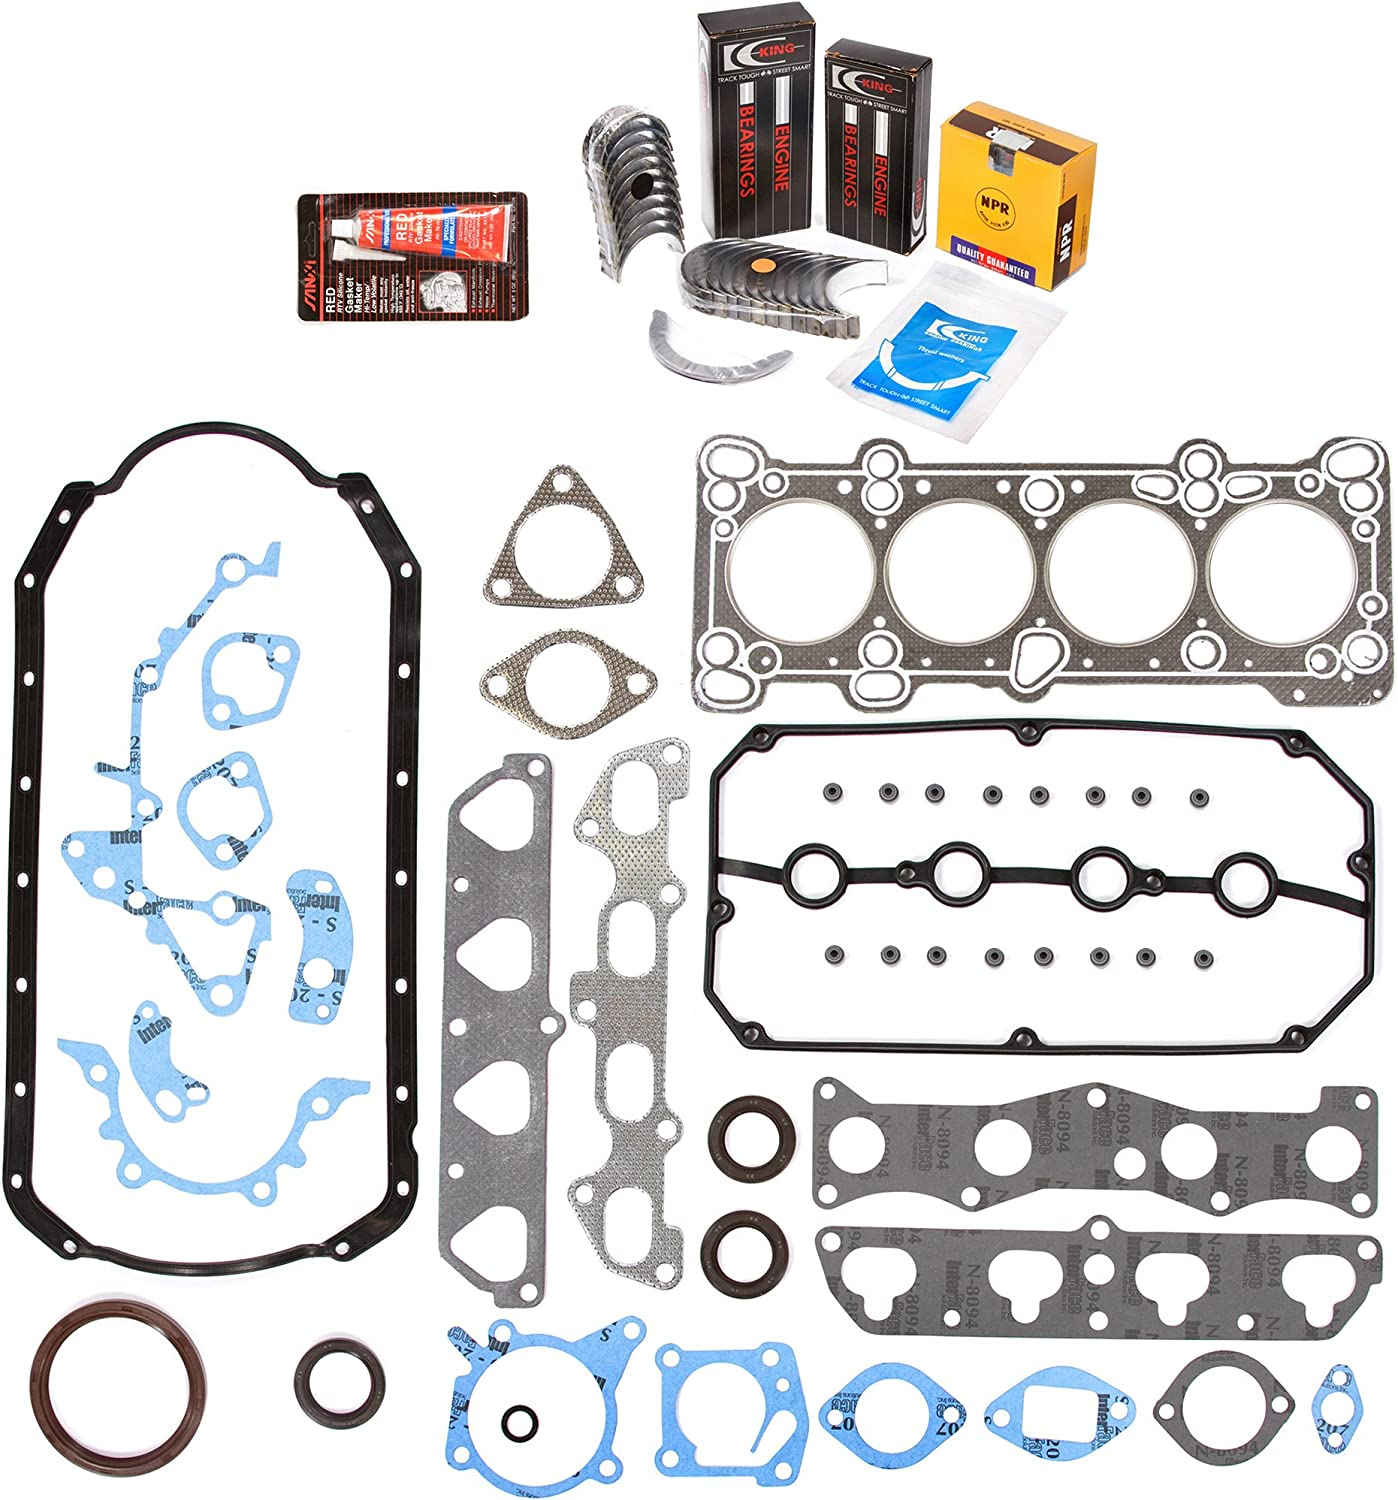 Full Gasket Set Pistons Bearings Fit 01-02 Kia Rio 1.5 DOHC A5D